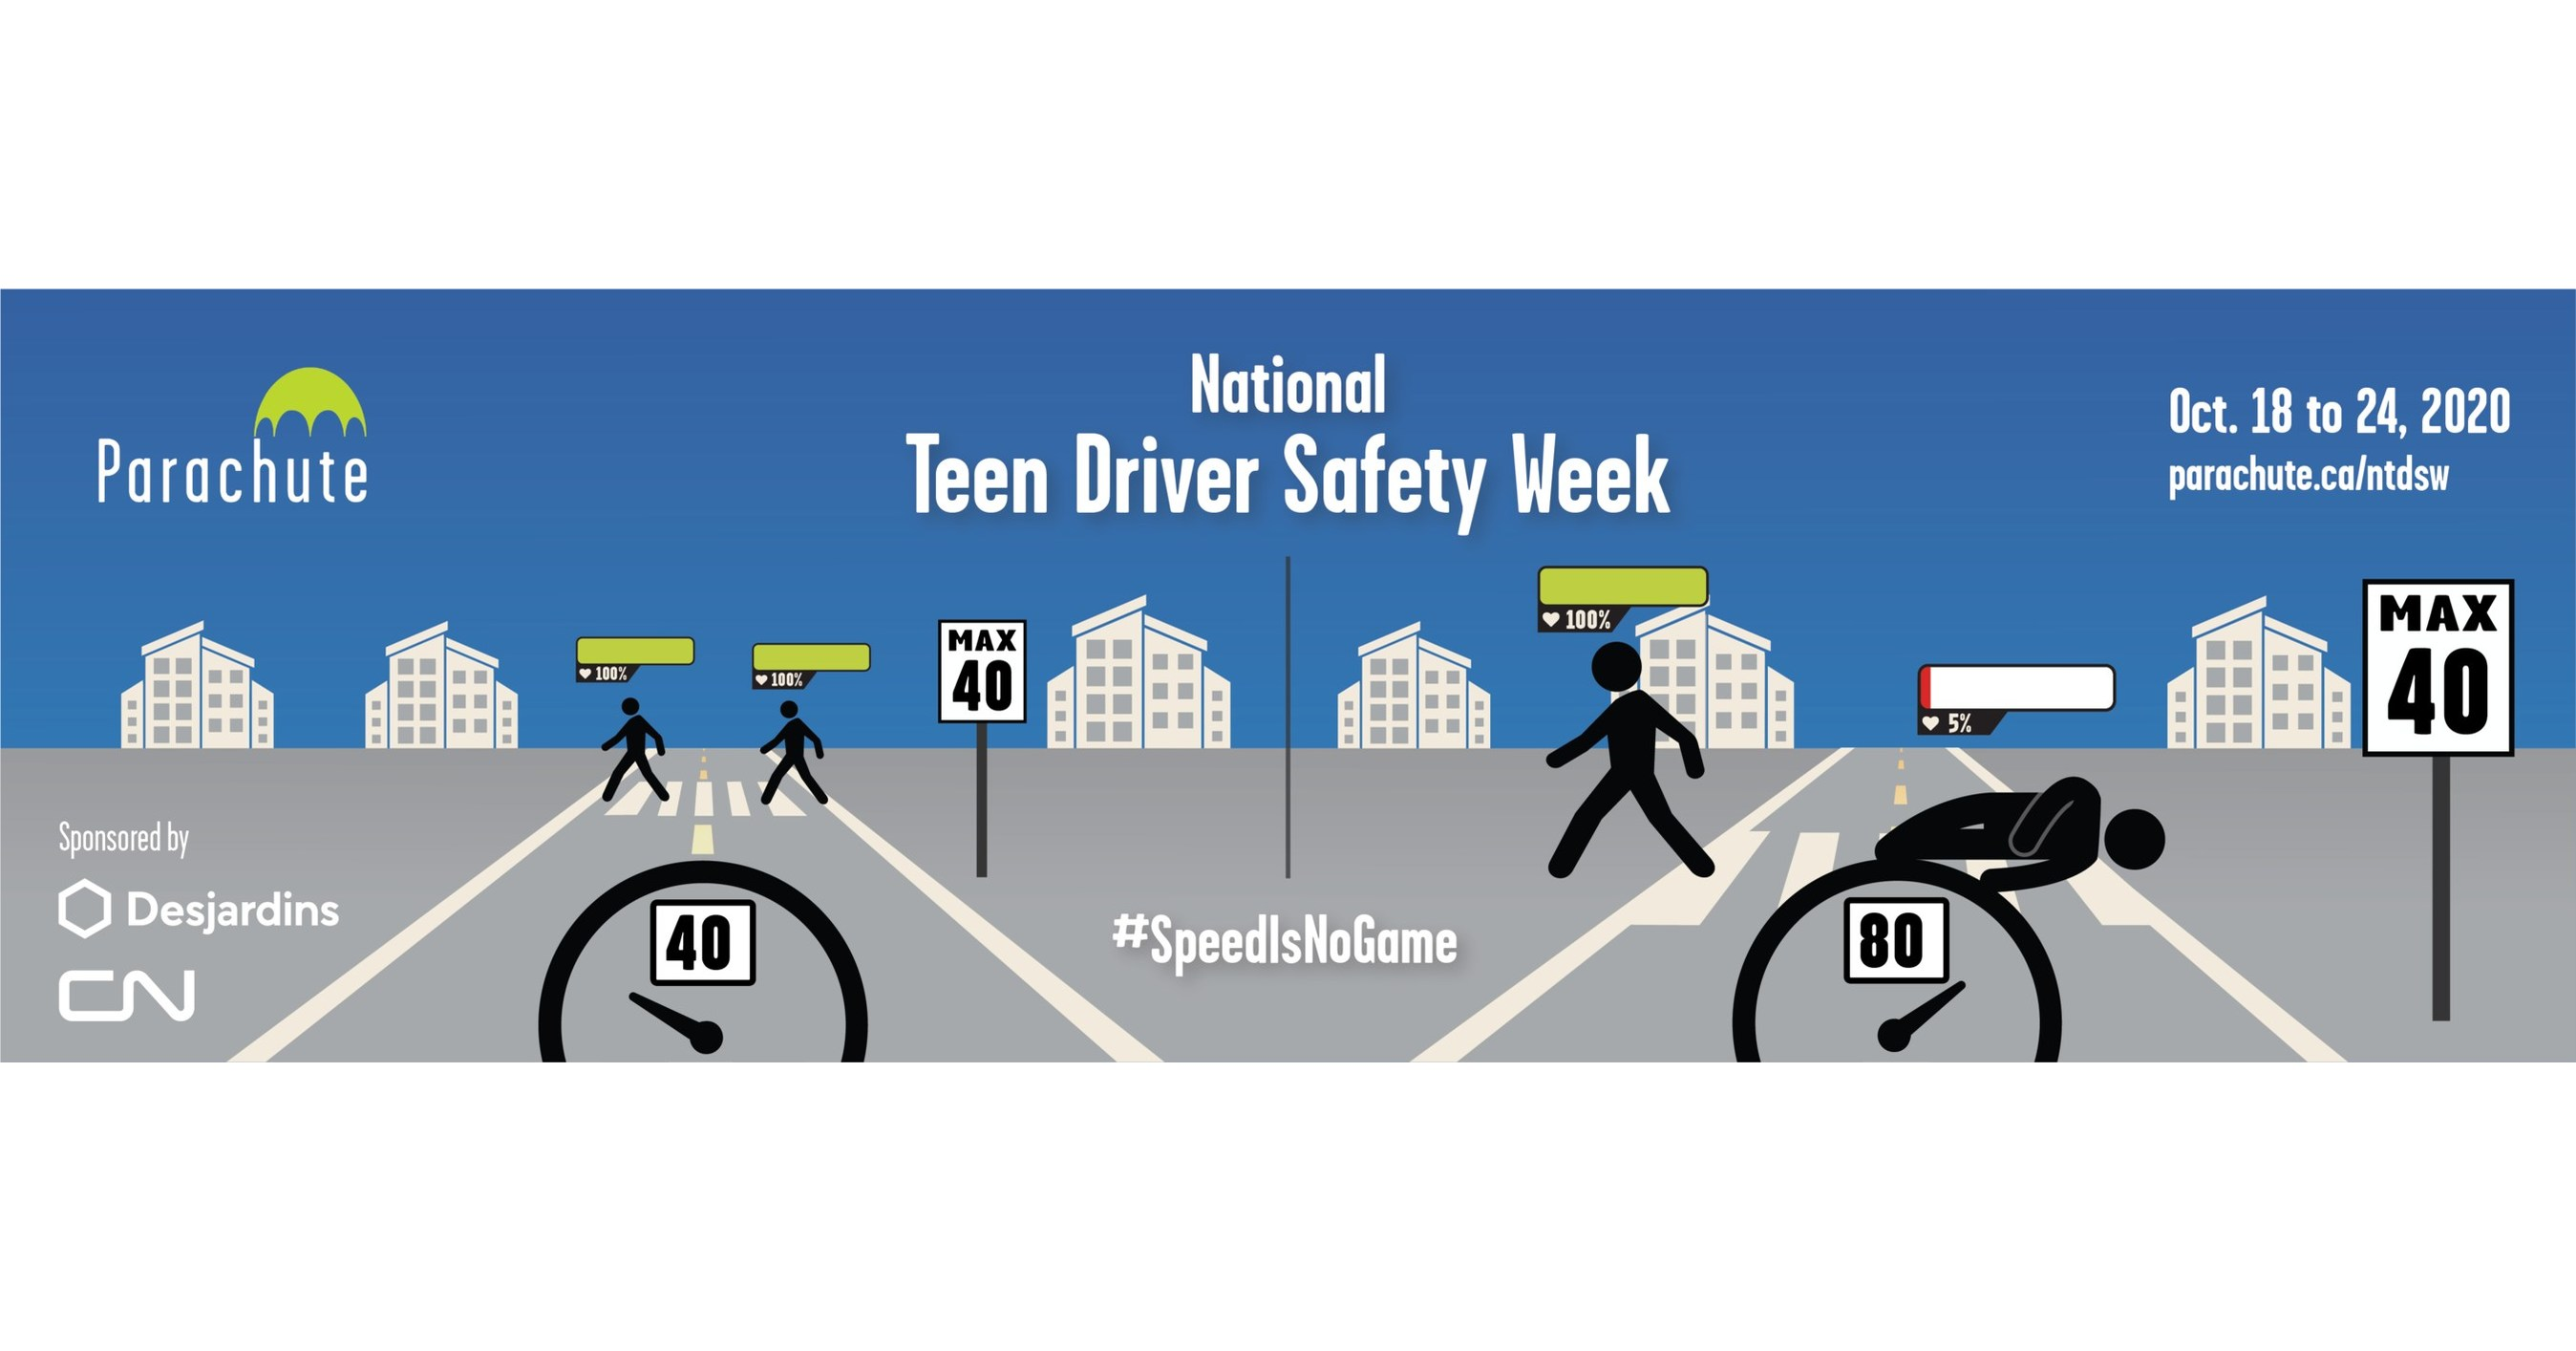 National Teen Driver Safety Week focuses on risks of speeding